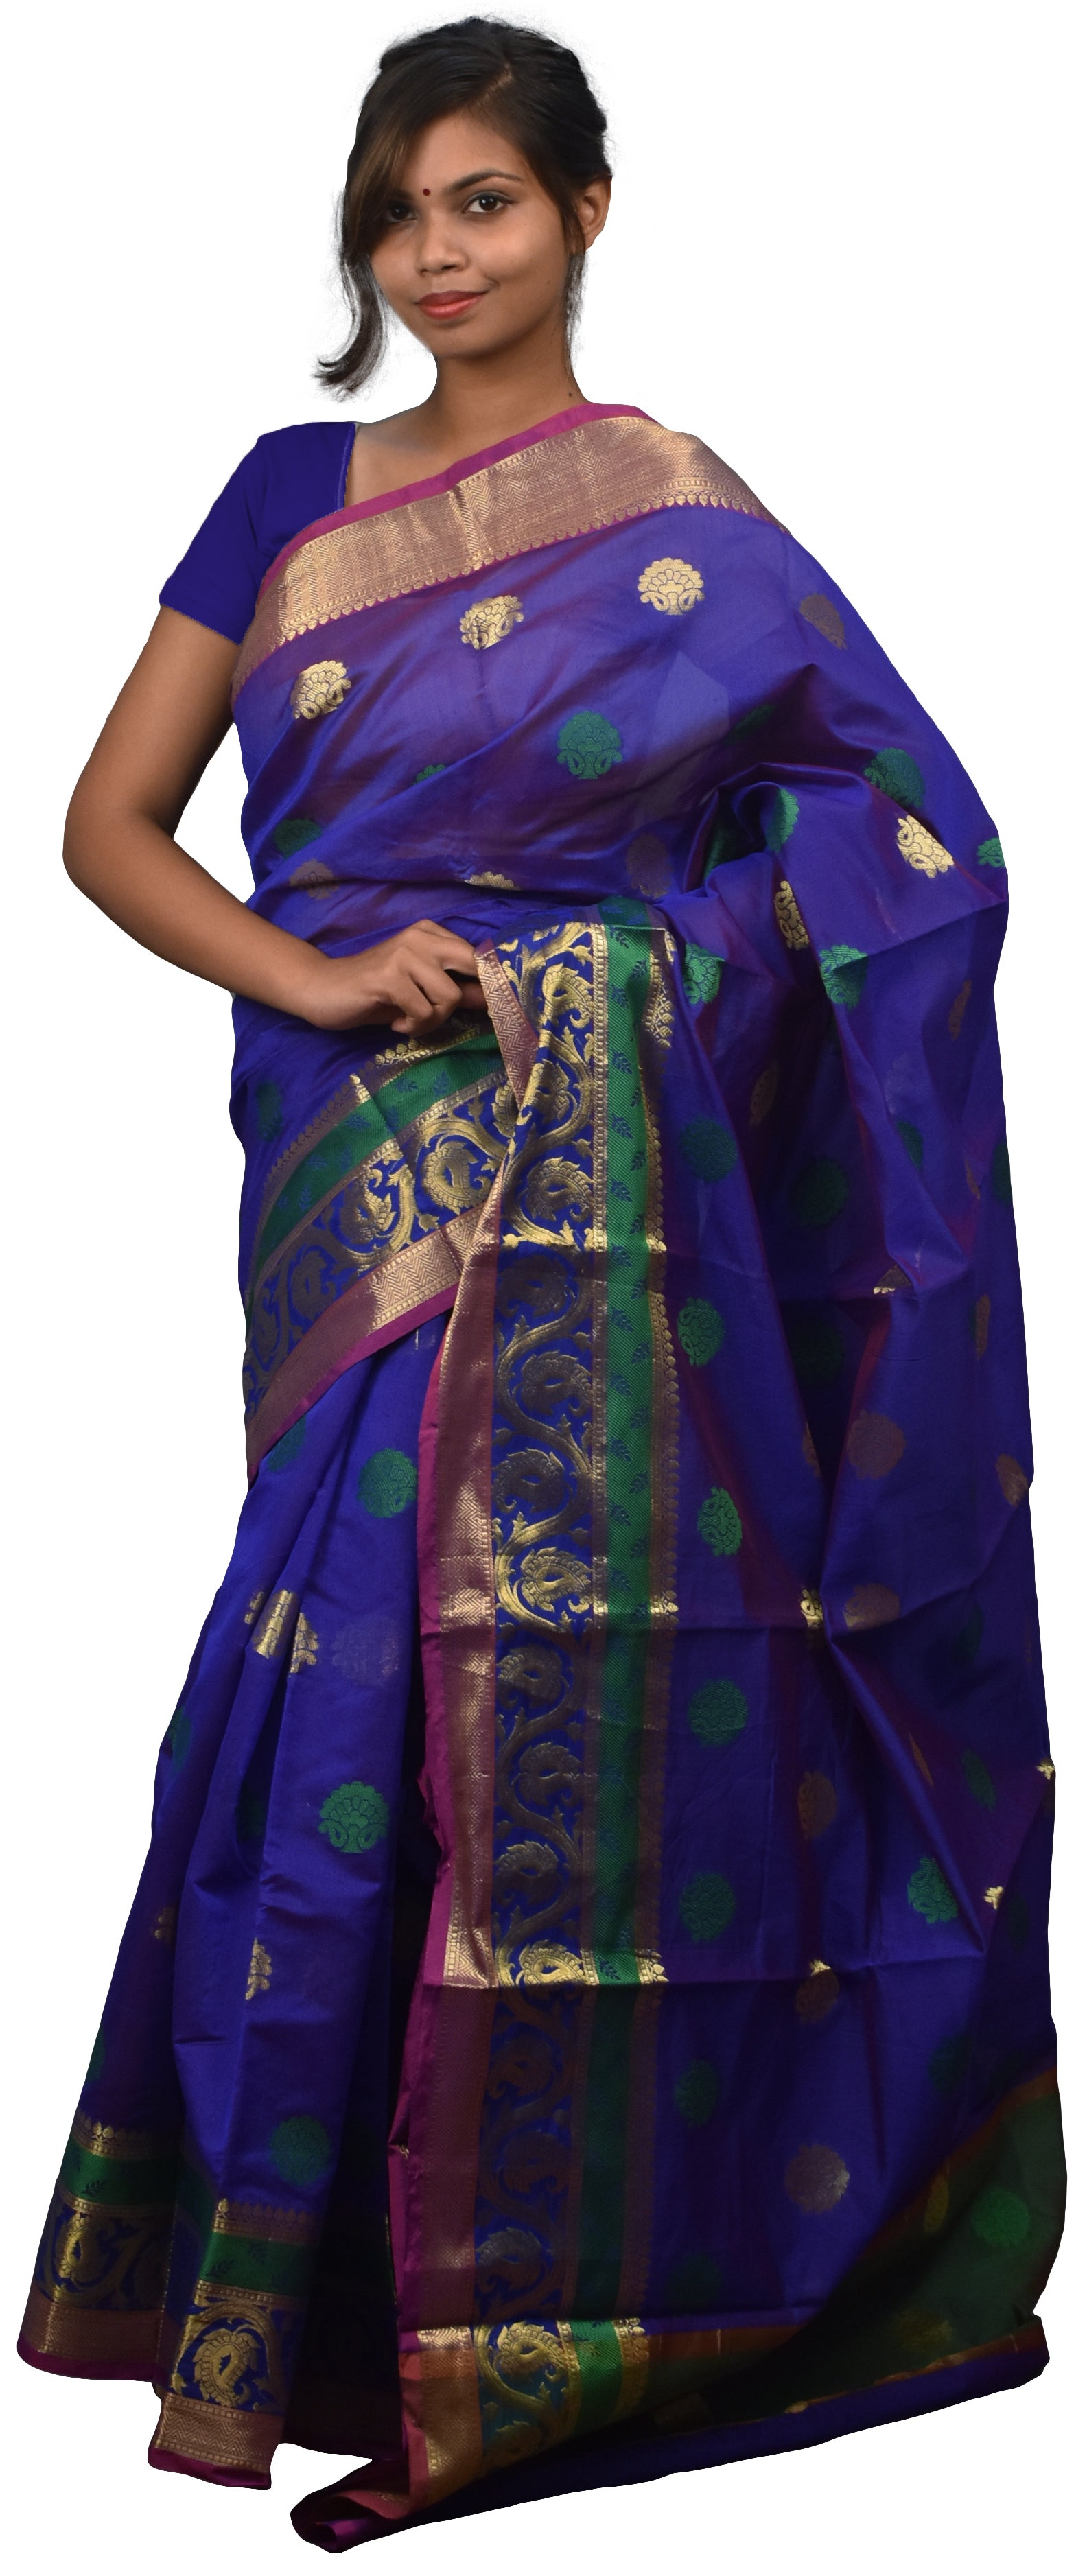 Blue Traditional Designer Wedding Hand Weaven Pure Benarasi Zari Work Saree Sari With Blouse BH8A